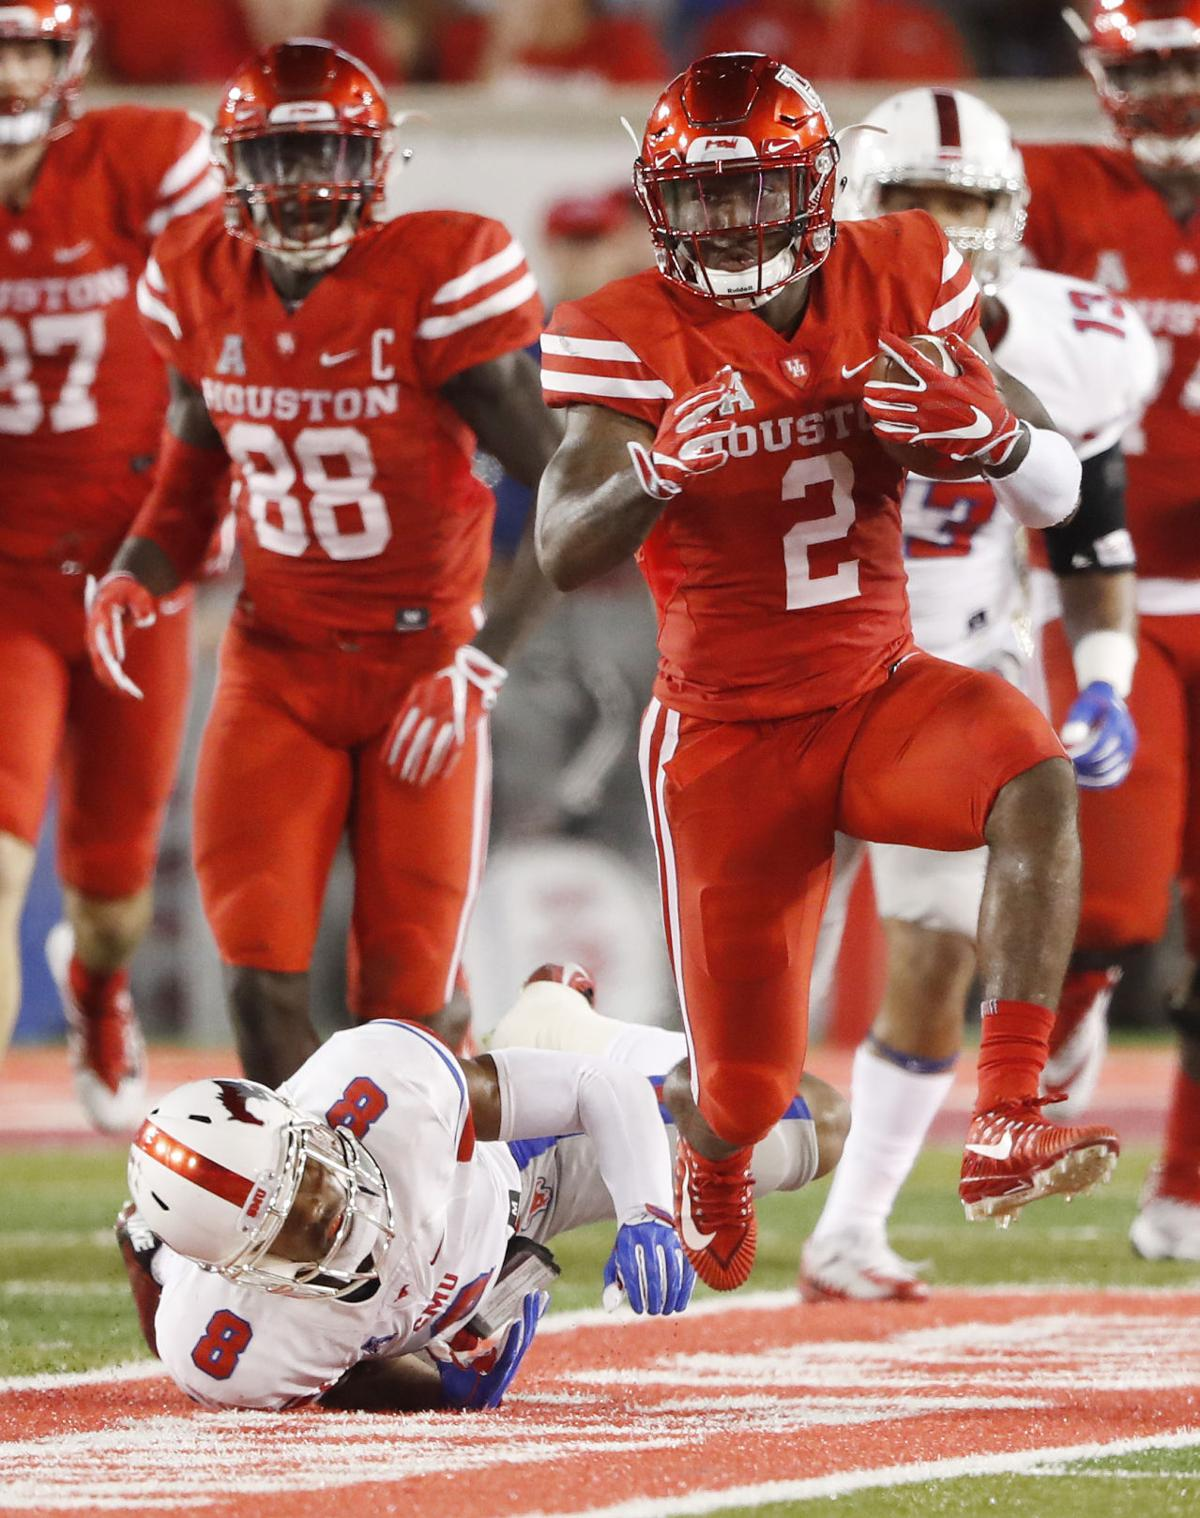 Houston Cougars vs. Southern Methodist Mustangs